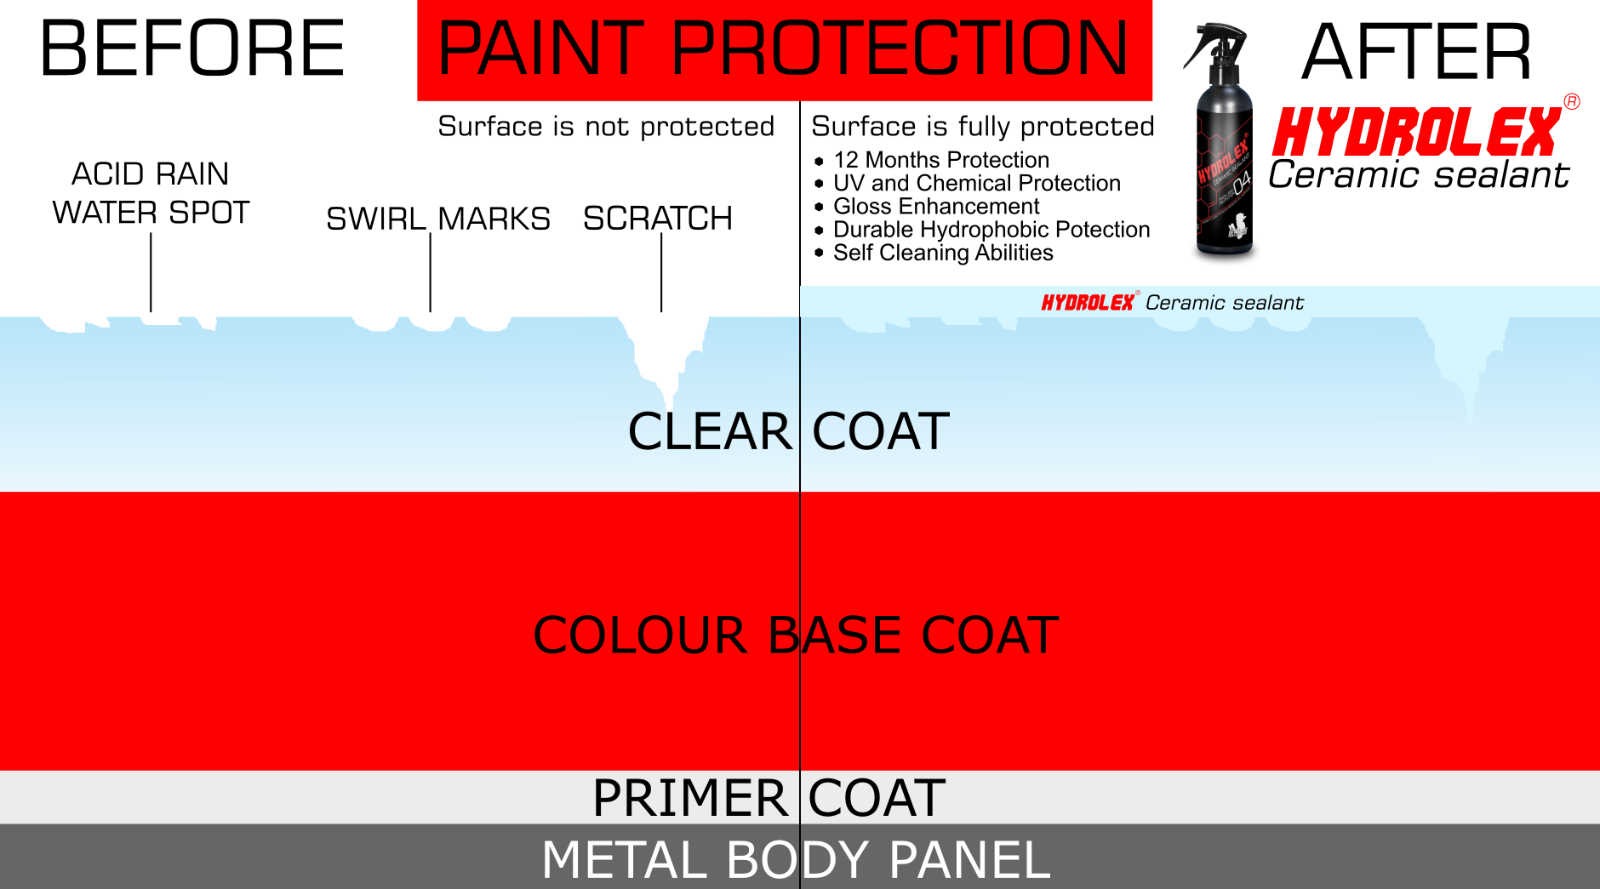 HYDROLEX ® Ceramic Sealant 1L Kit, Paint Protection Seal, 12 month protection 4